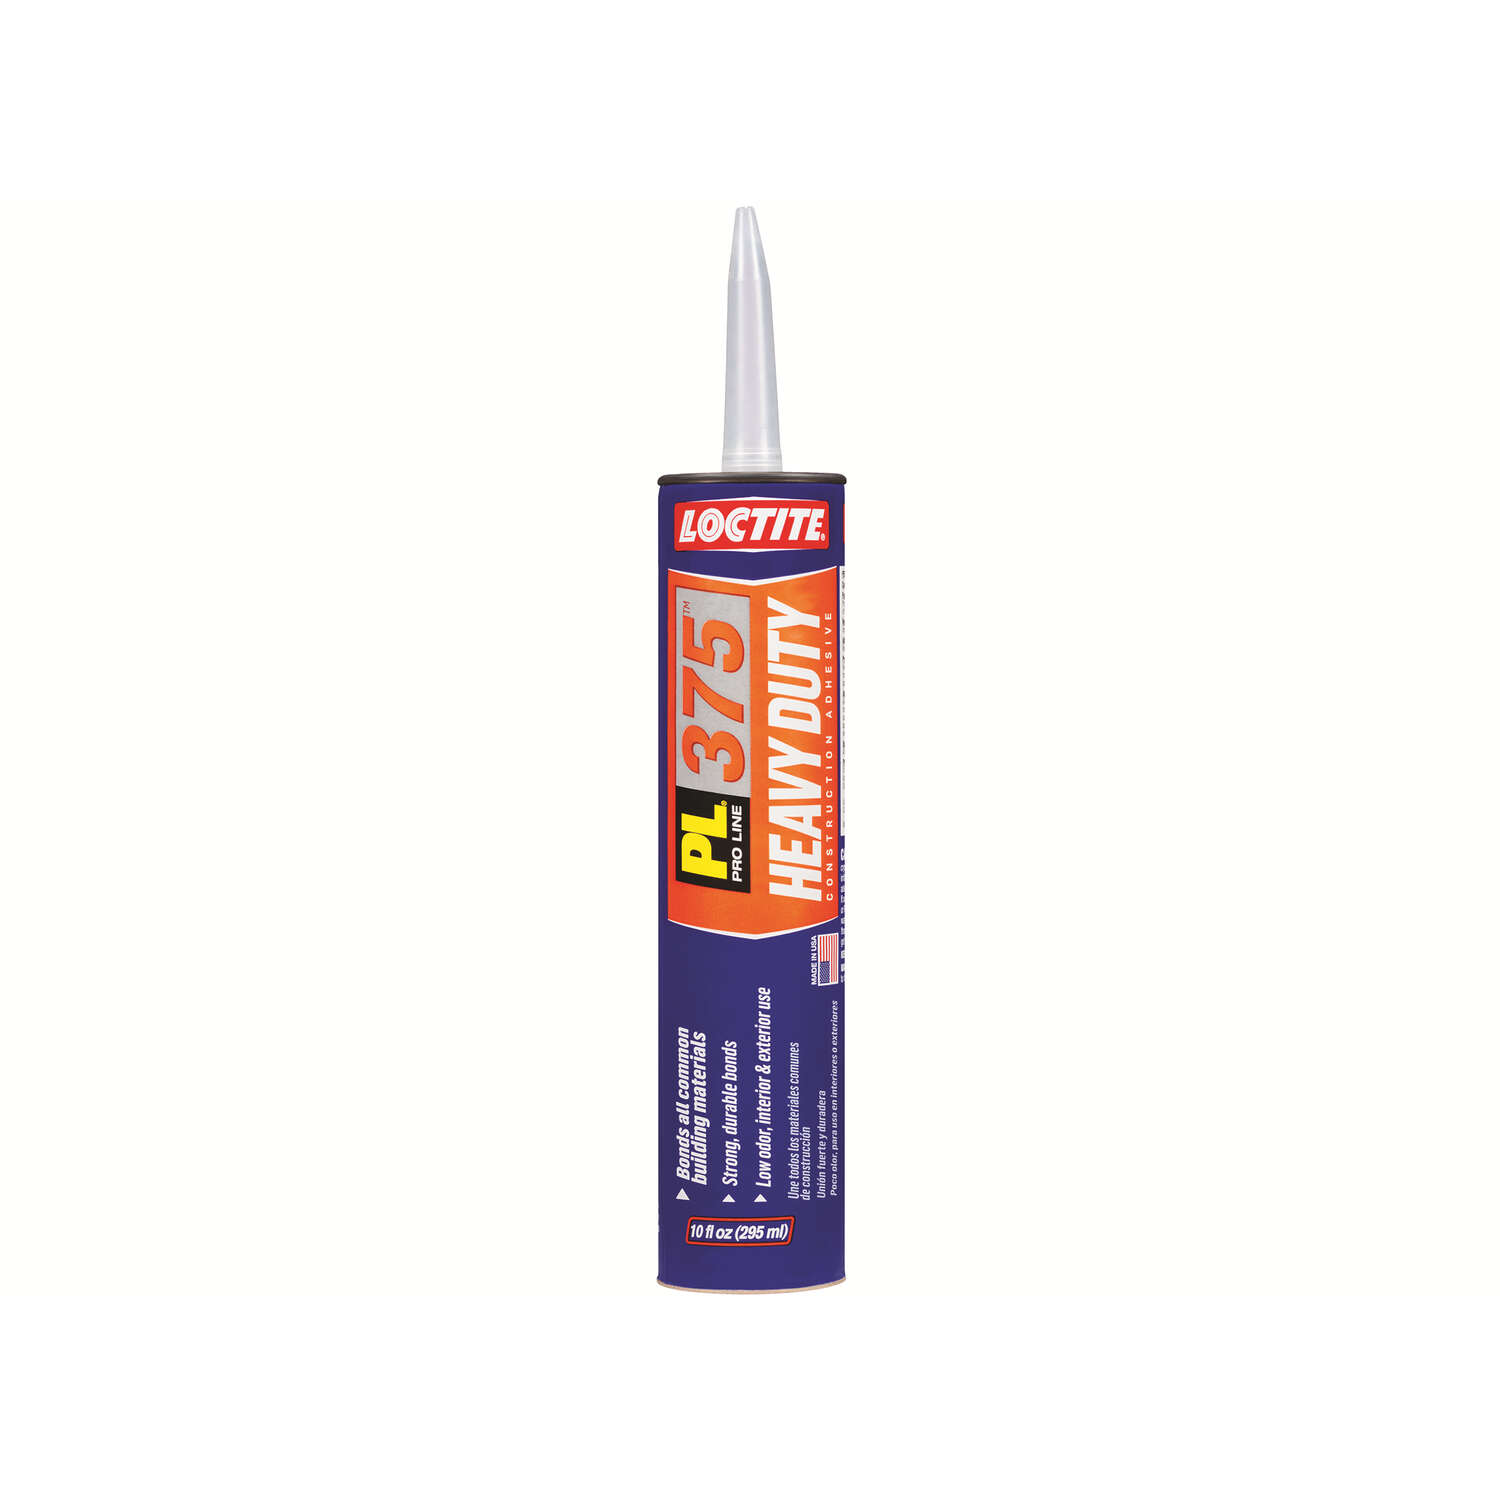 Loctite  PL 375  Synthetic Elastomeric Polymer  Construction Adhesive  10 oz.